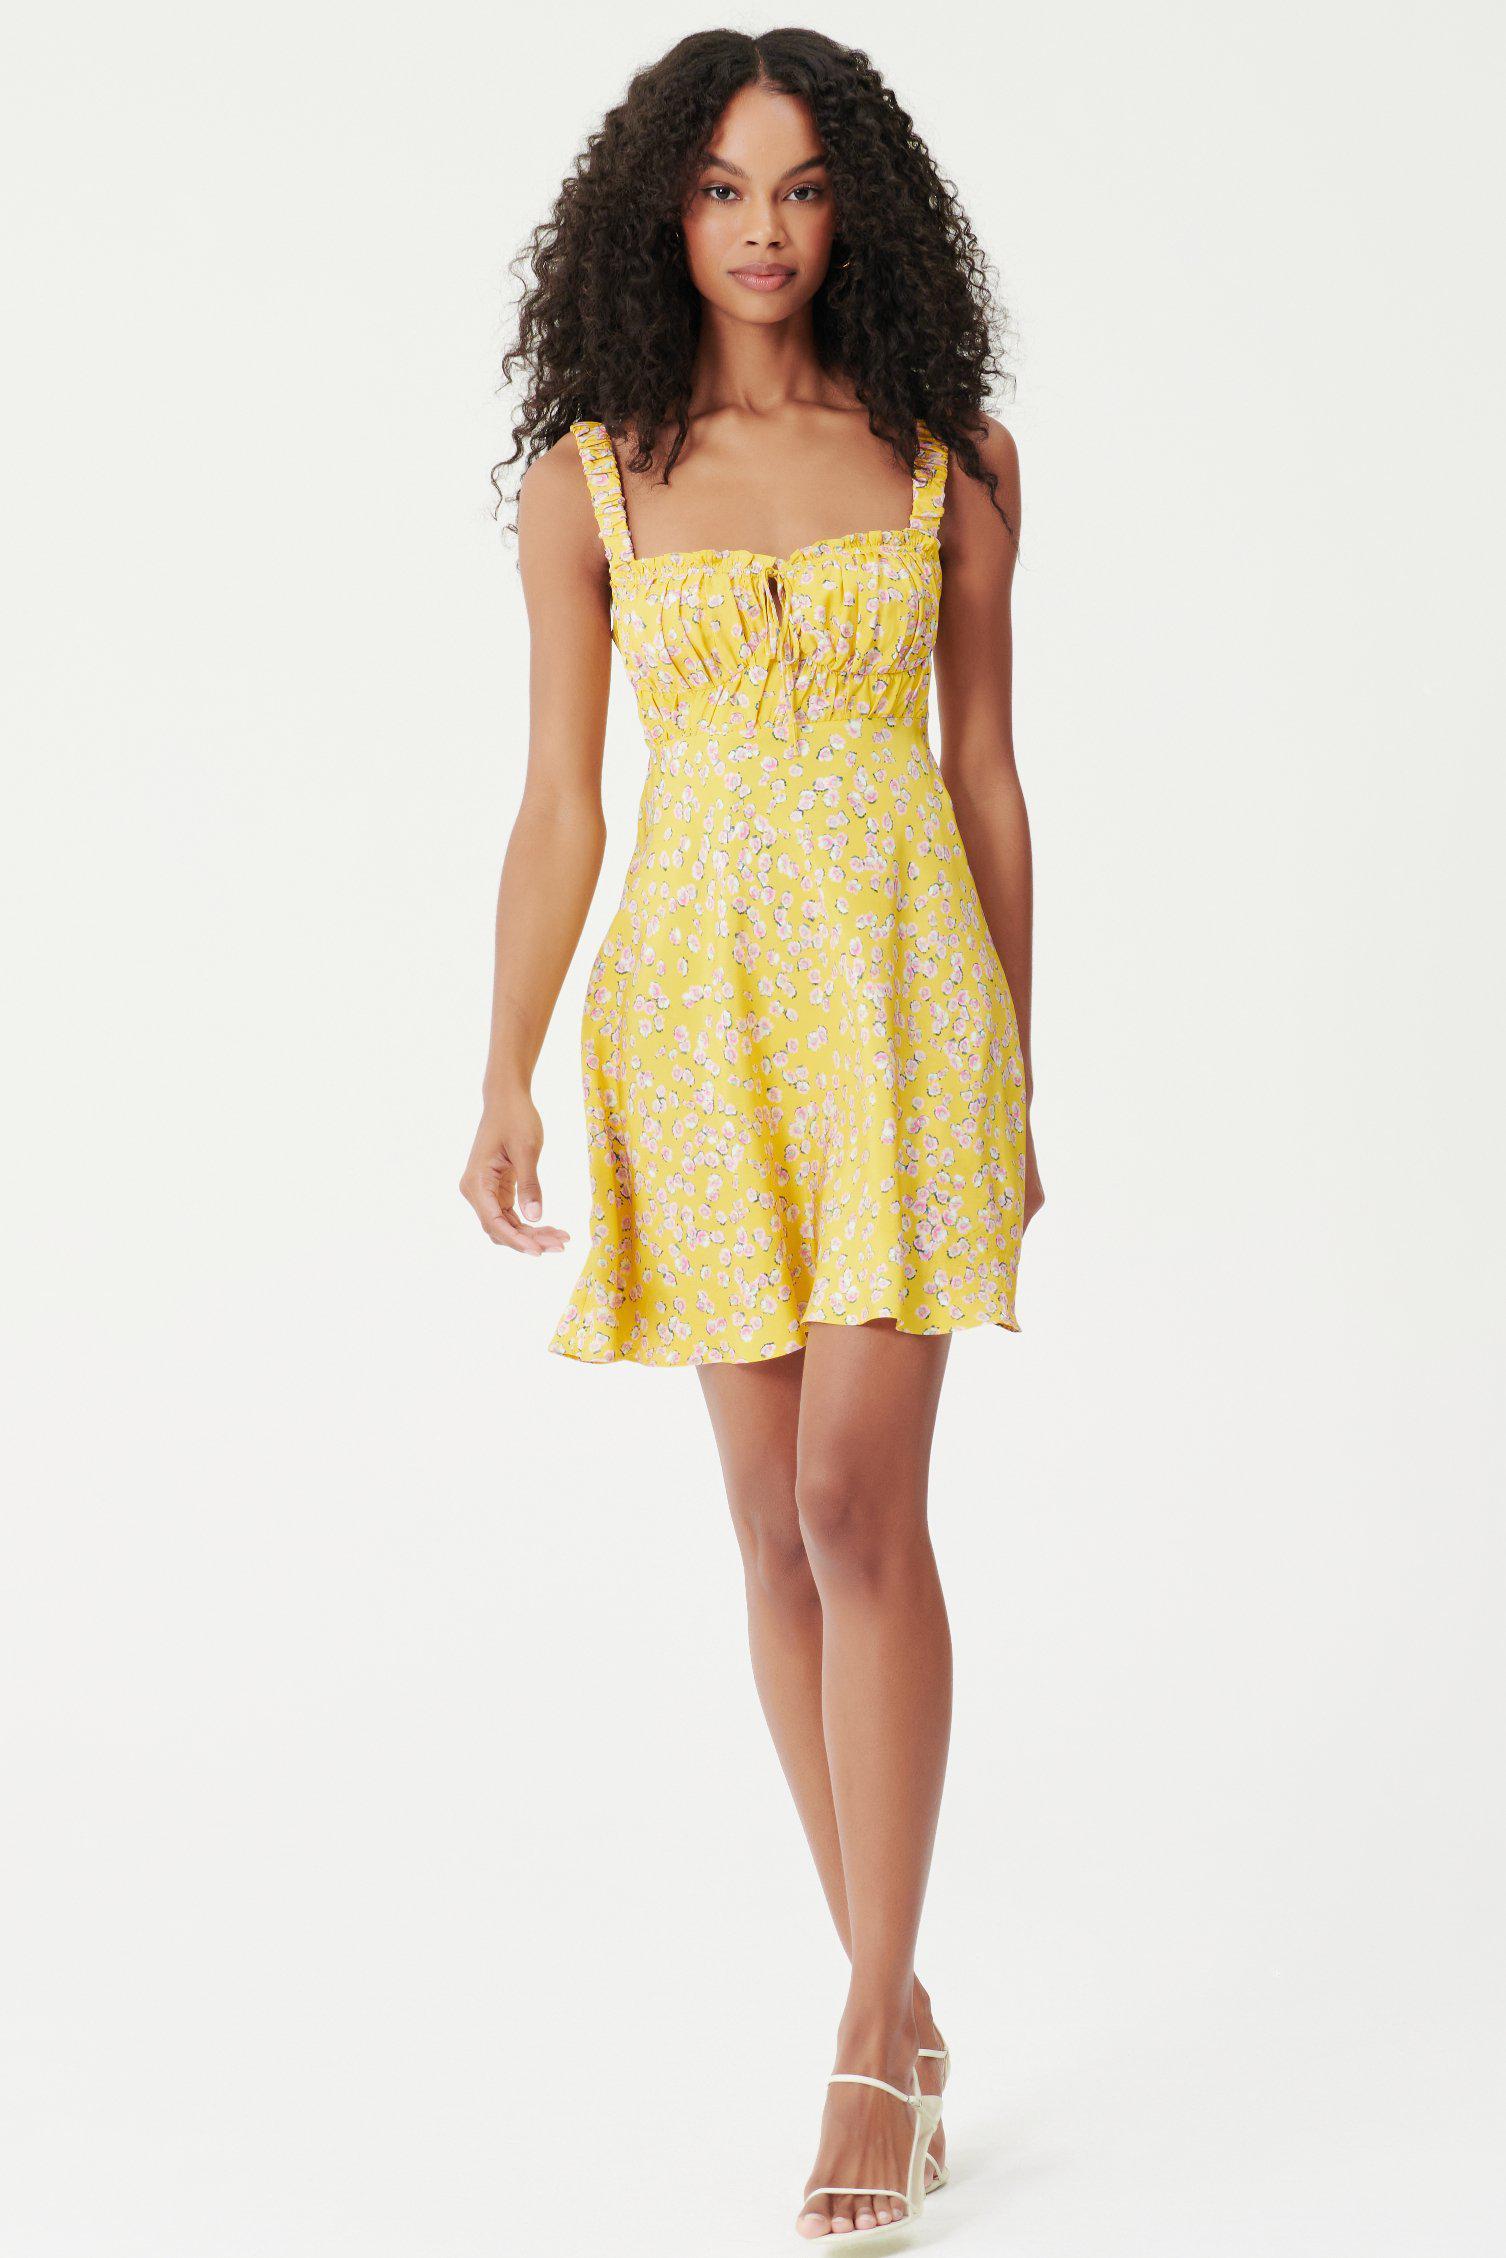 SIMIE DRESS - HASTINGS FLORAL